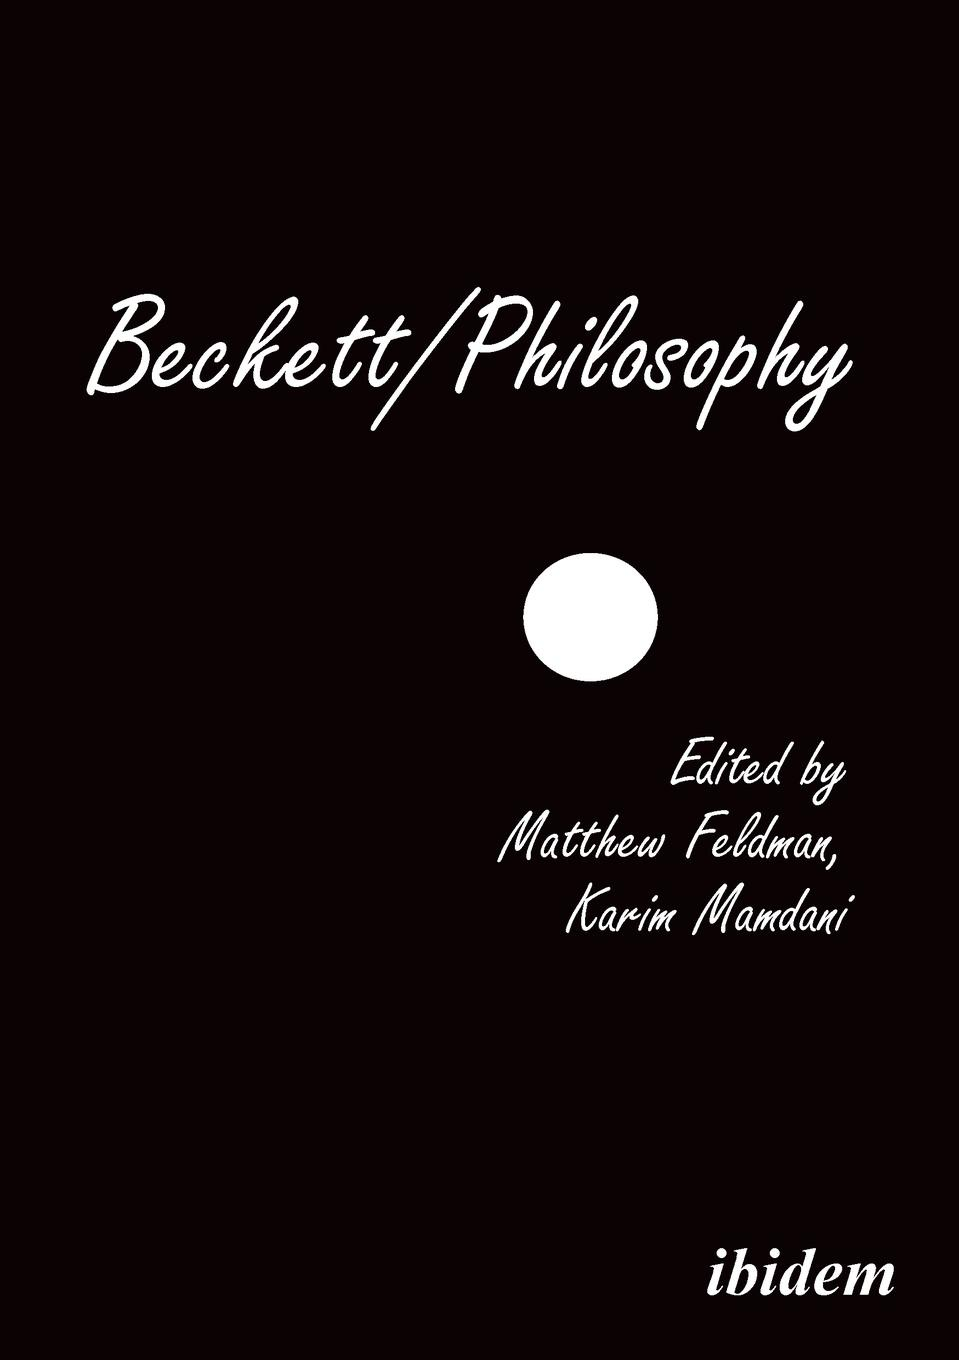 Matthew Feldman, Donald Verene, Erik Tonning Beckett/Philosophy. A Collection bronwyn williams beckett s birthright